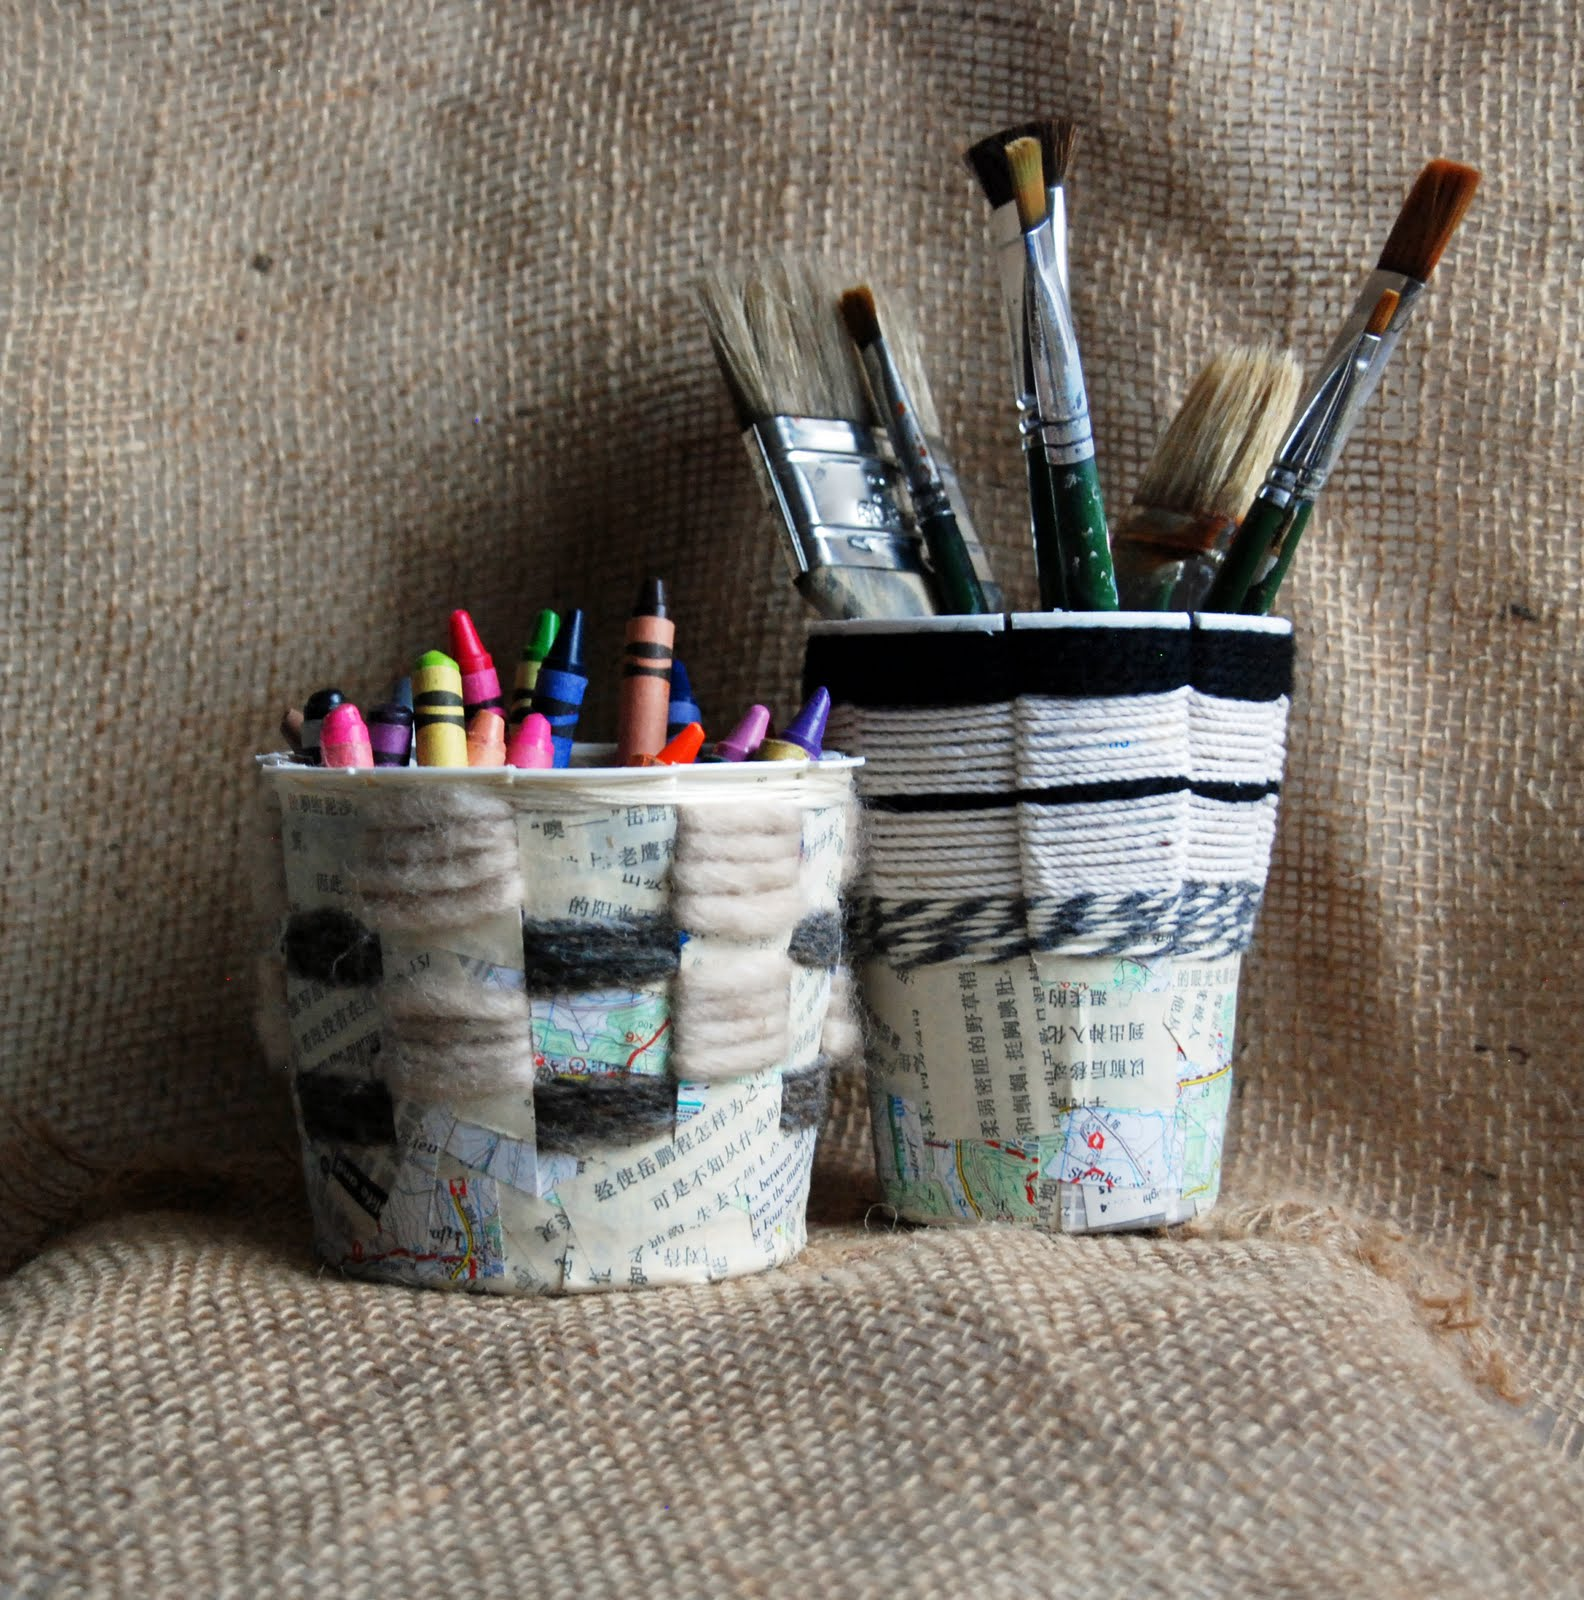 Basket Weaving Uses : That artist woman basket weaving using recycled containers